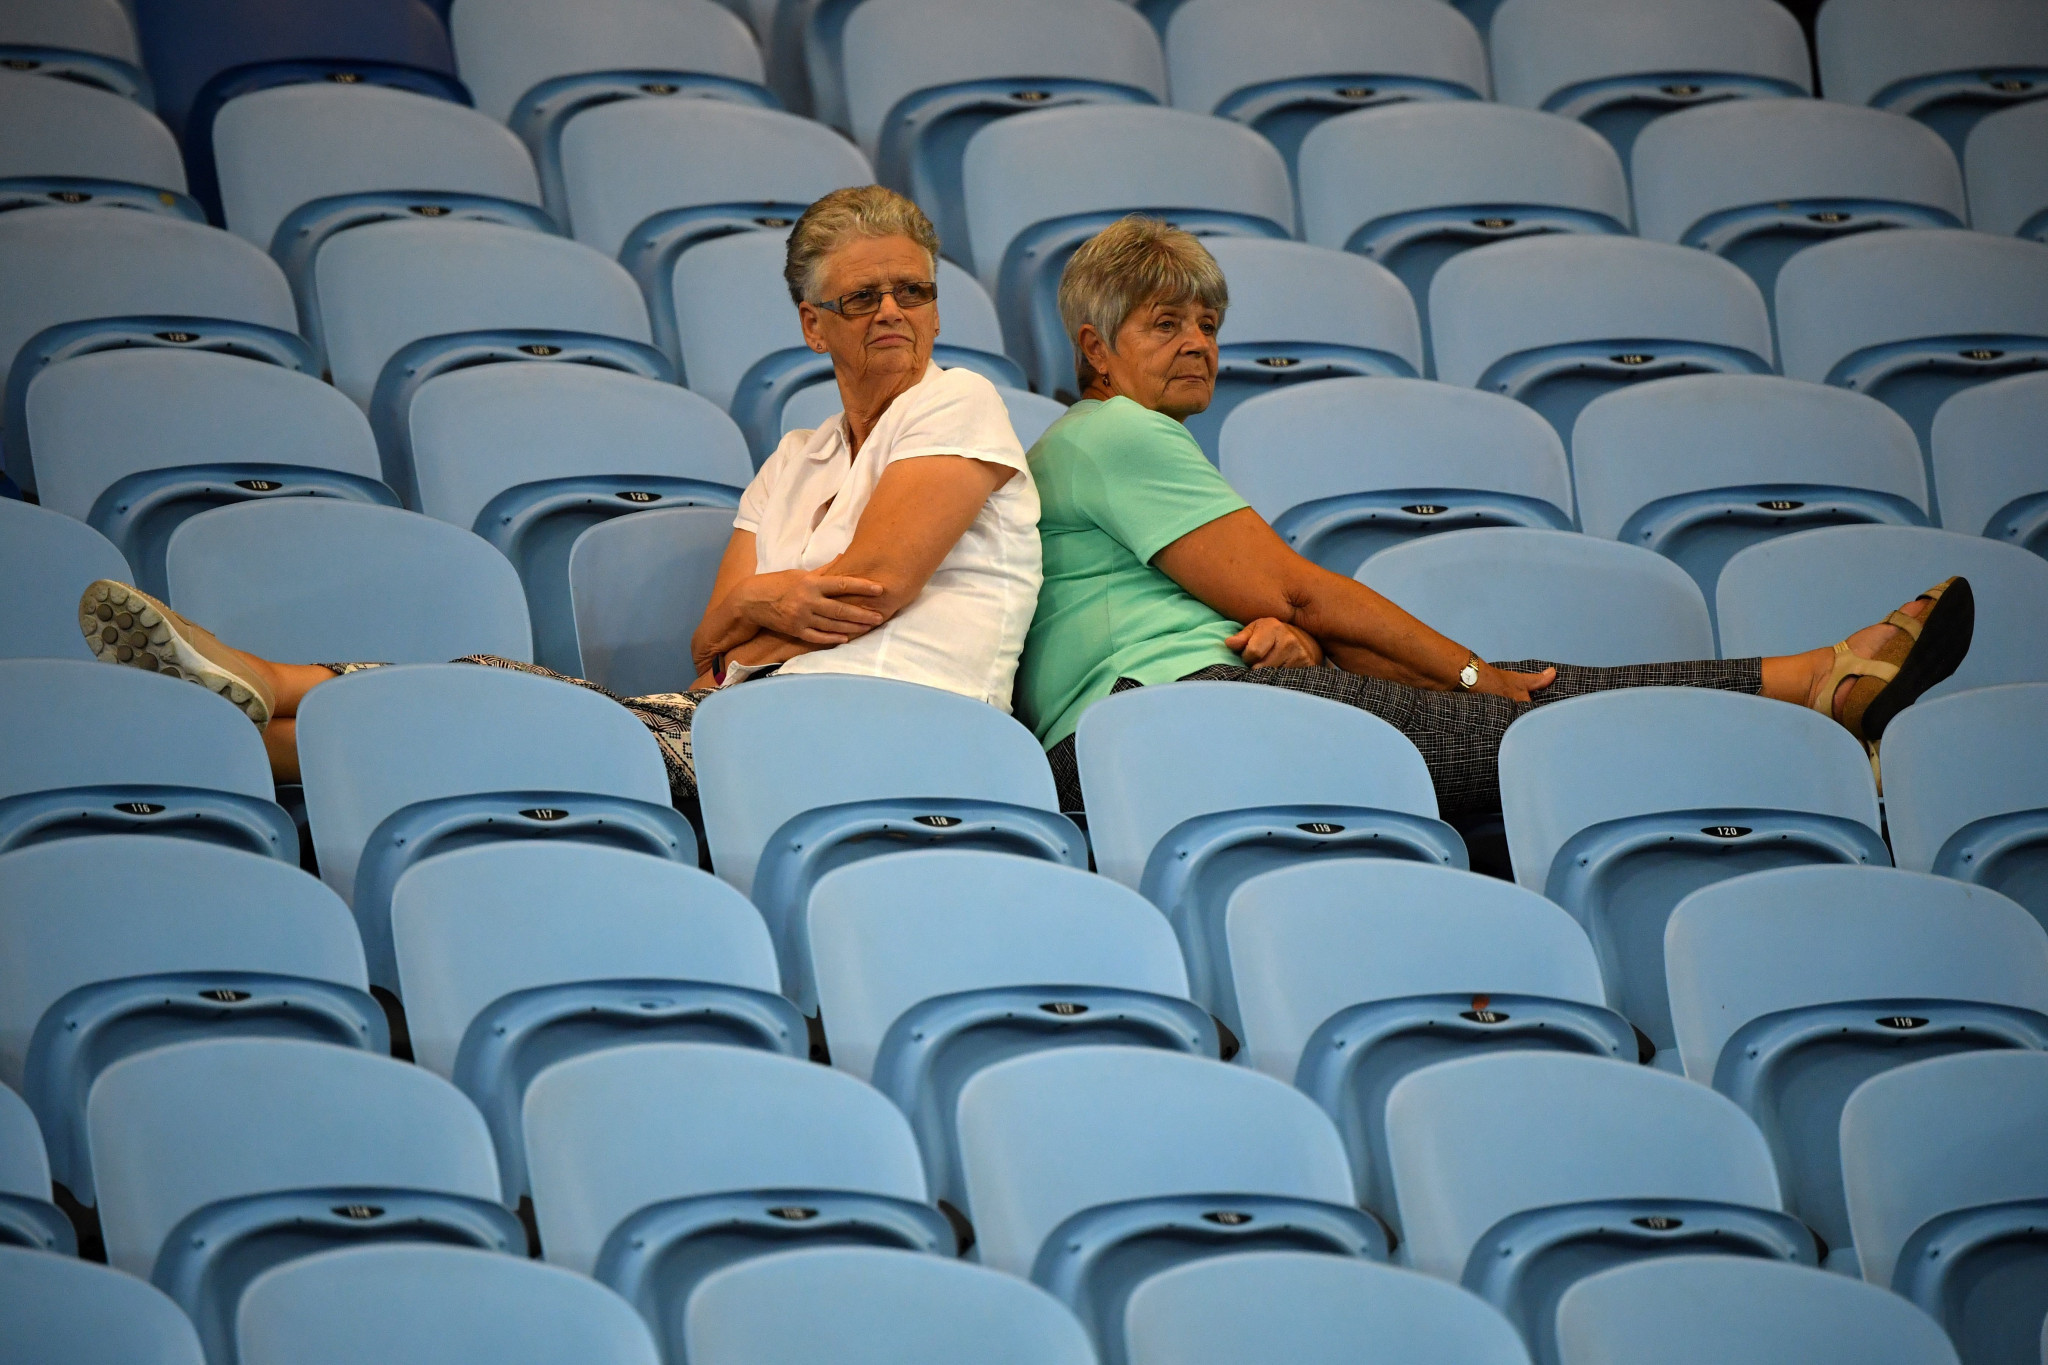 Spectators at the Australian Open have been forced to stay late for matches ©Getty Images